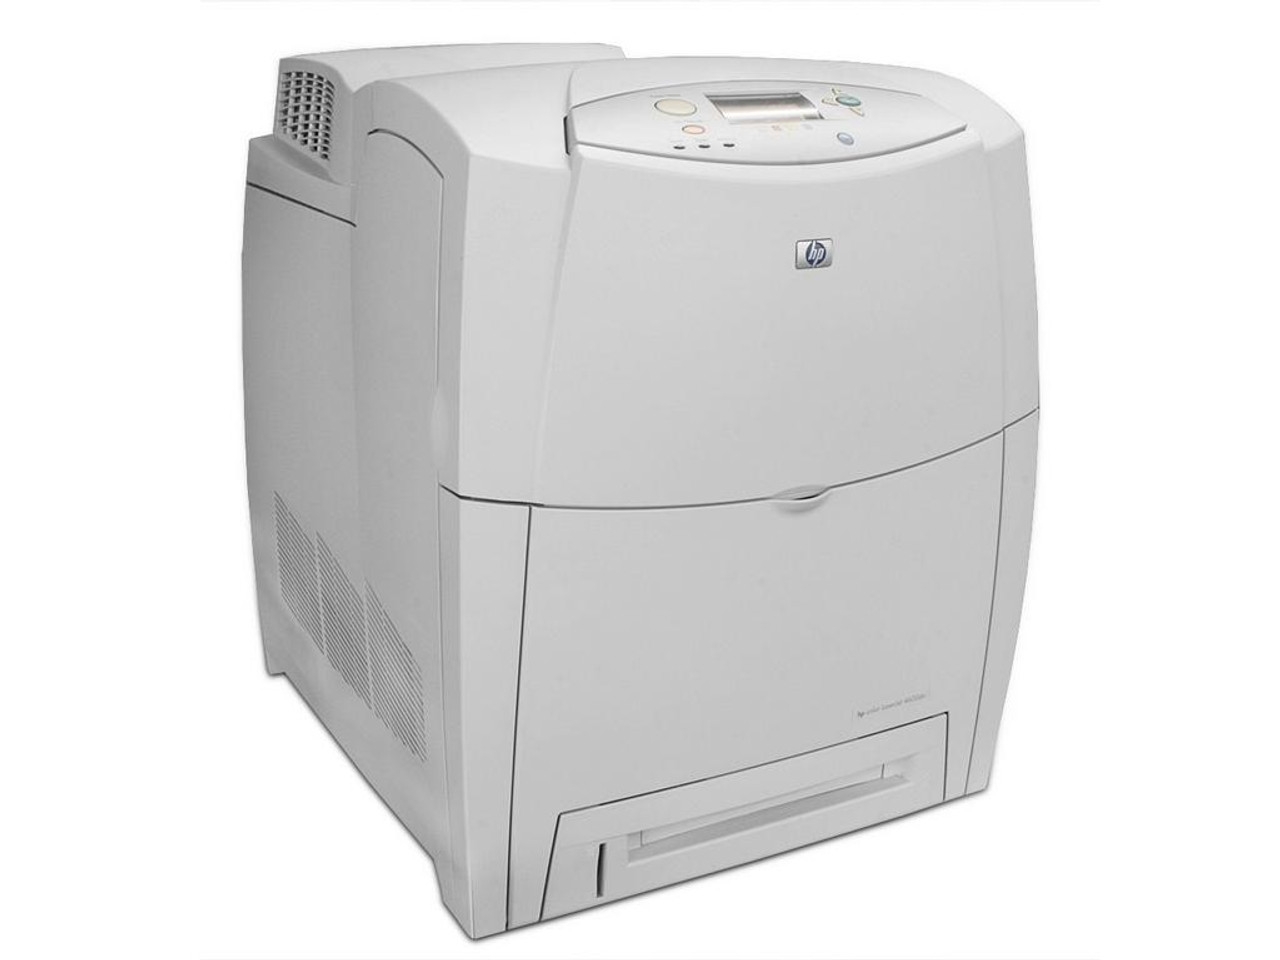 HP Color LaserJet 4600dn - C9661A - HP Laser Printer for sale with low cost shipping